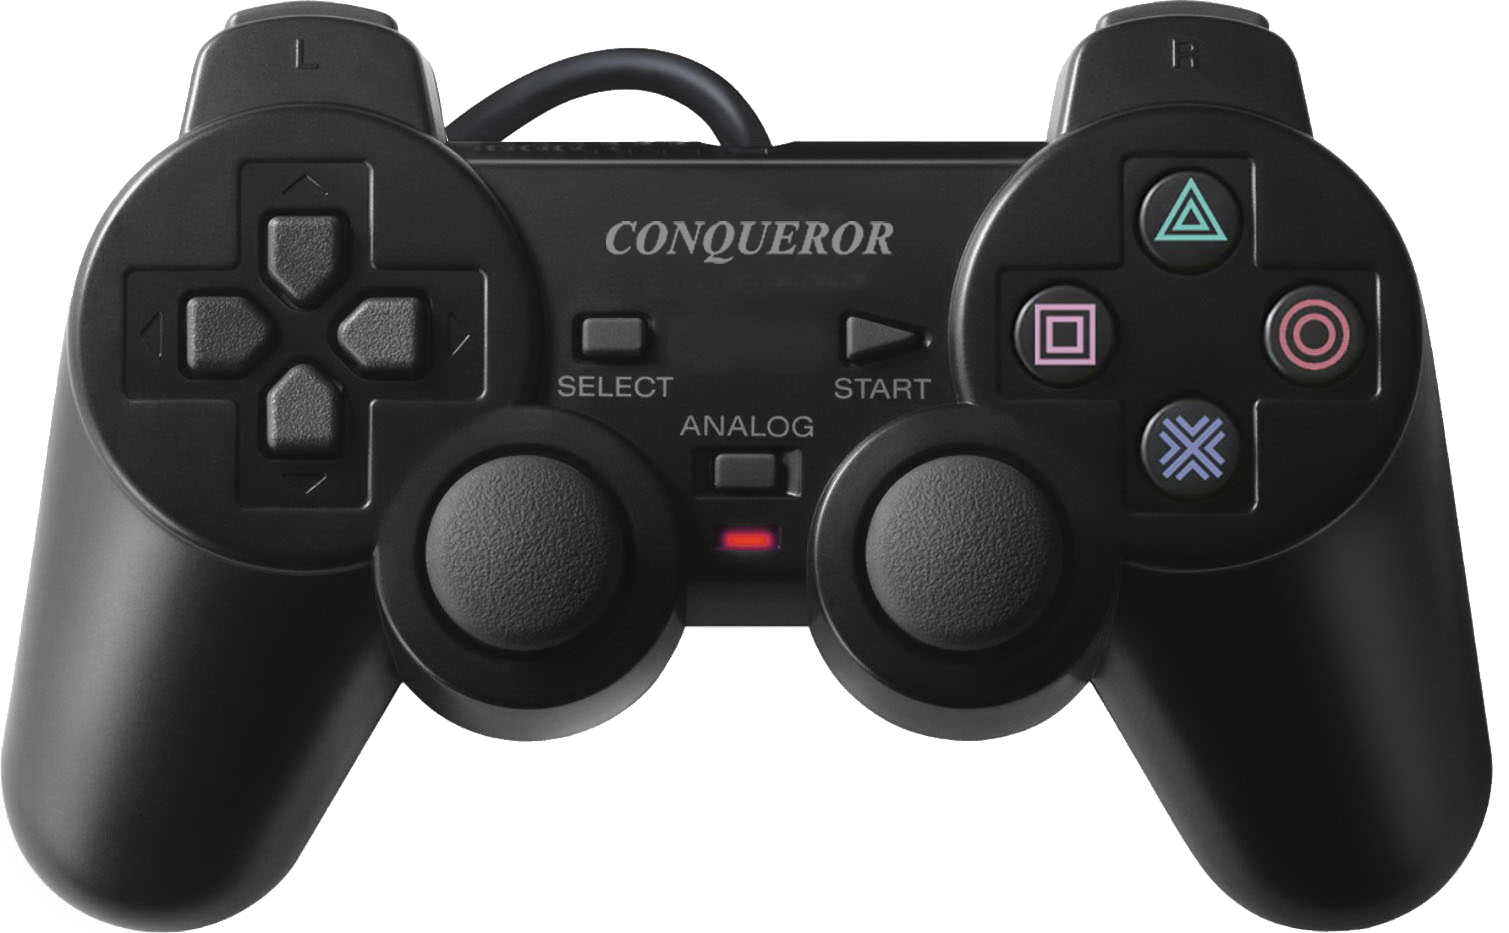 Png image . Game clipart video game controller